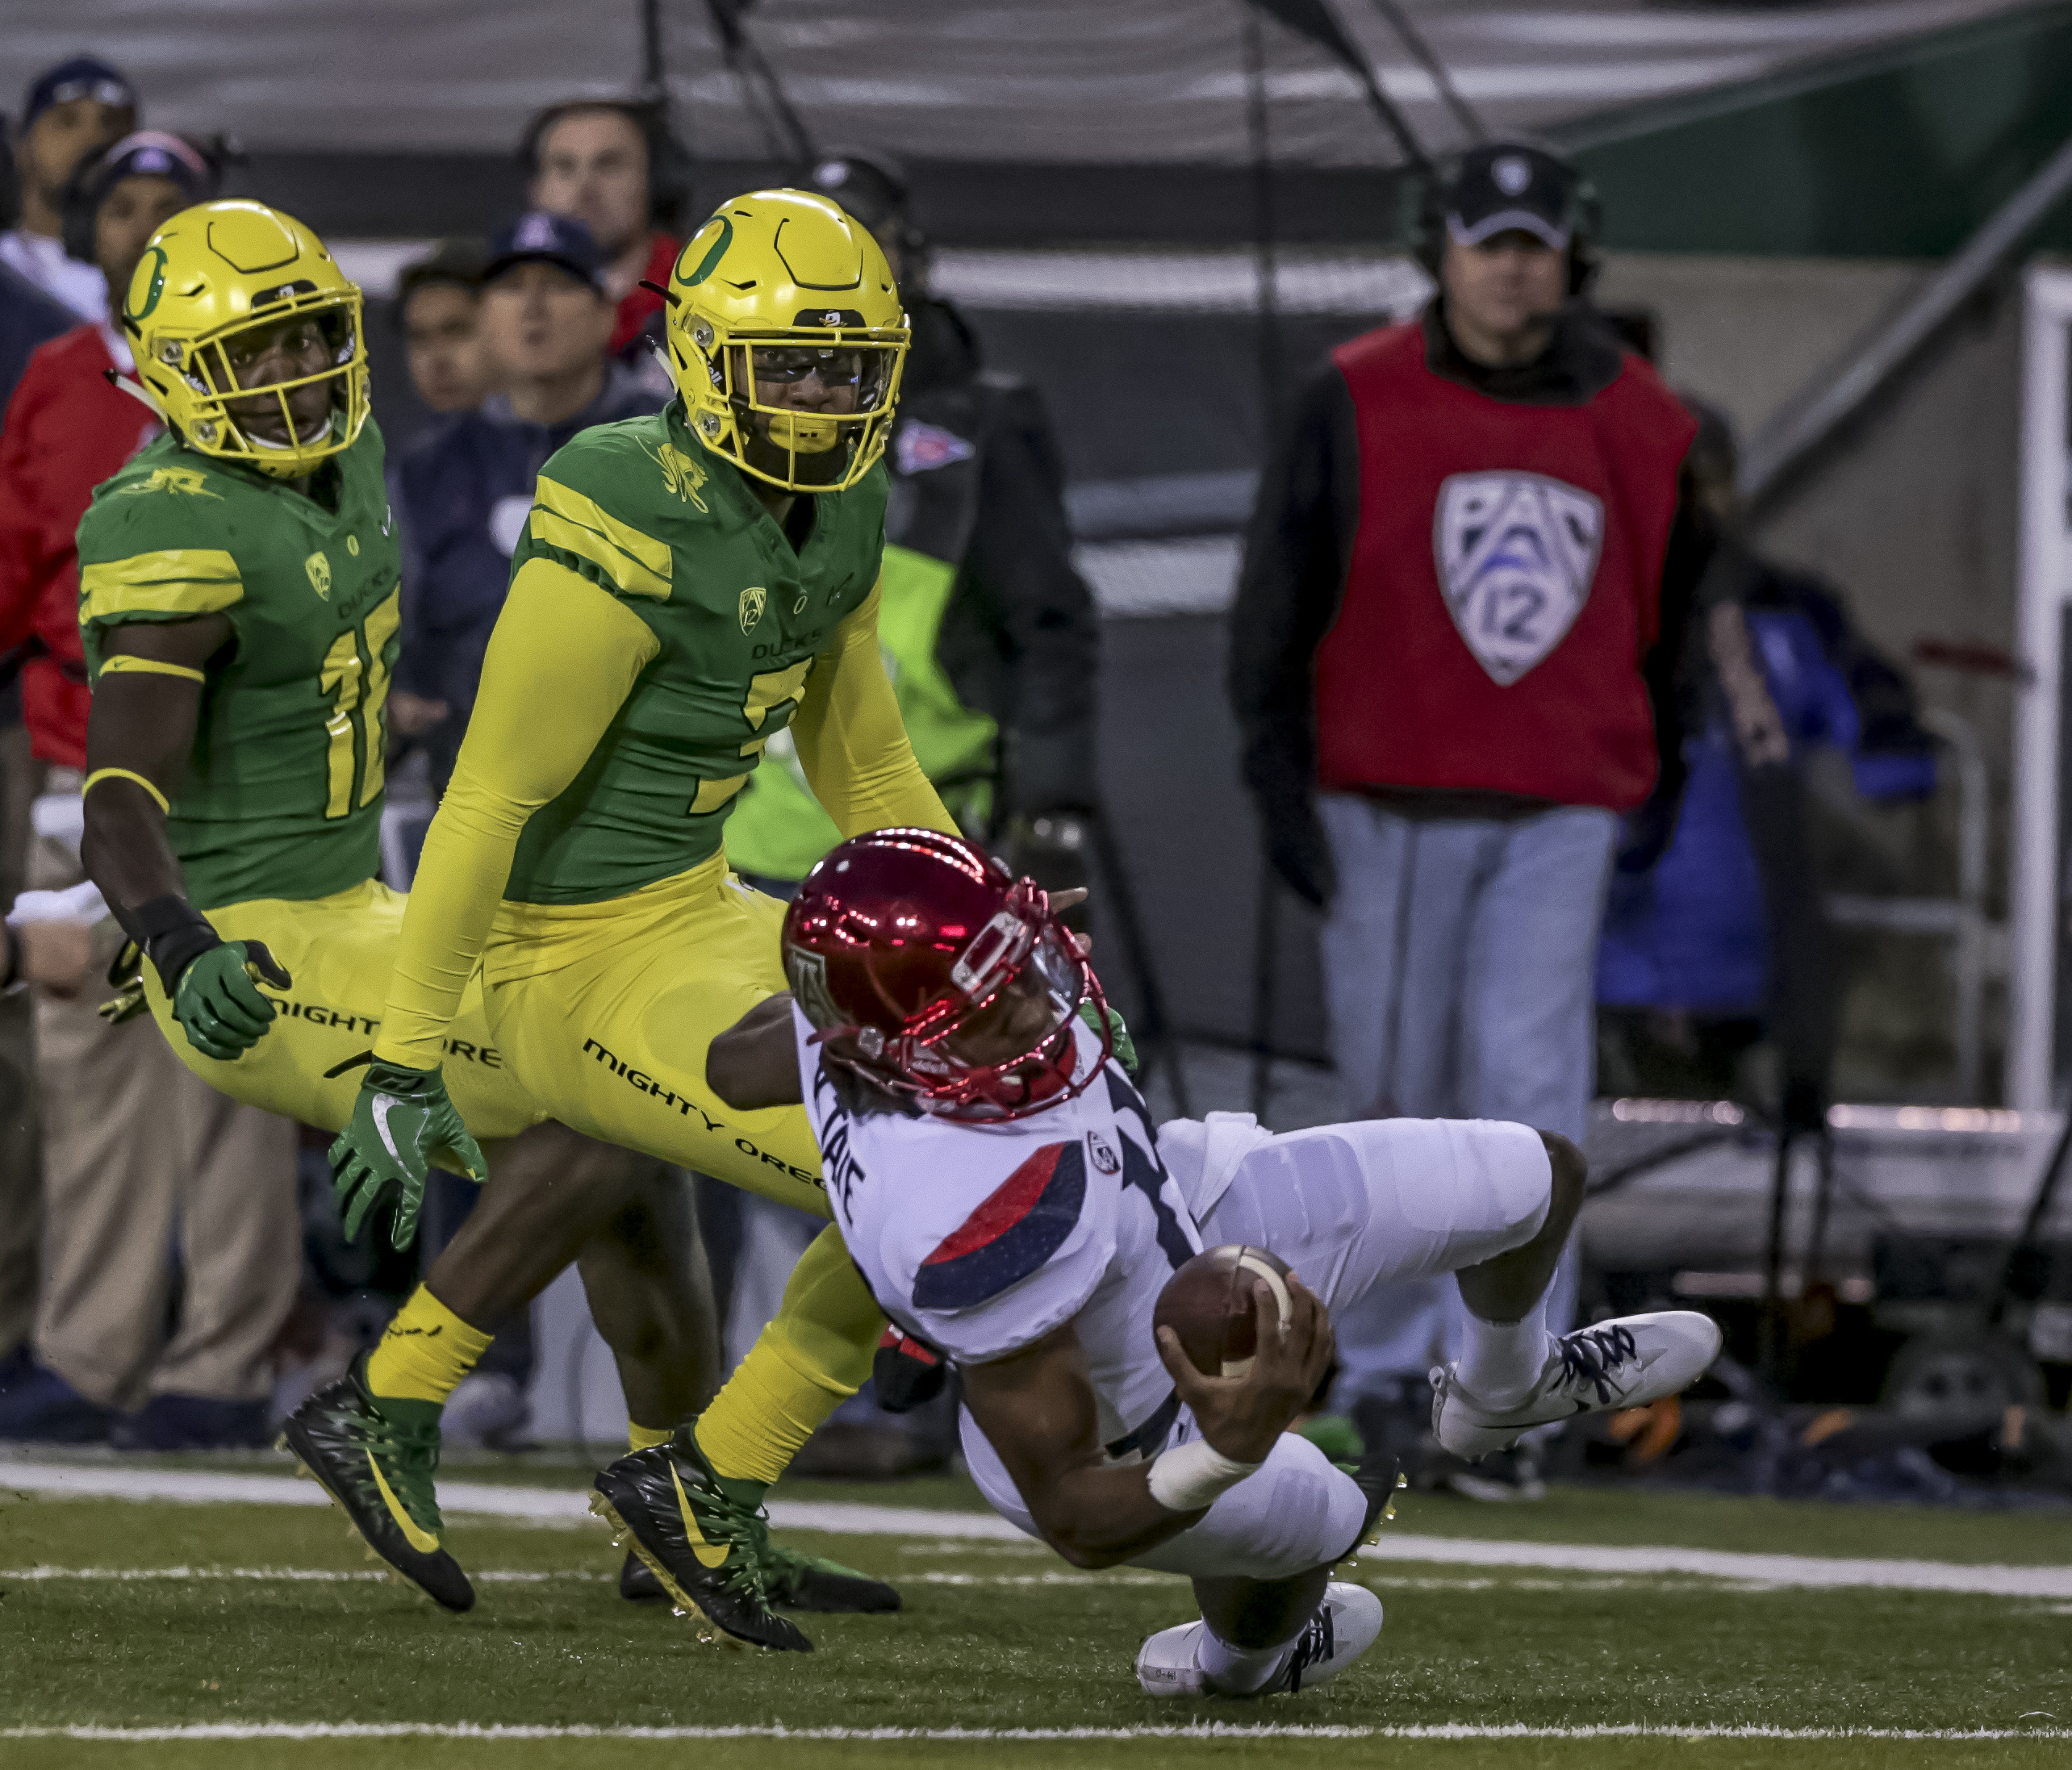 Arizona quarterback Khalil Tate (#14) is knocked down by the Oregon defense. The Oregon Ducks lead the Arizona Wildcats 28 to 21 at the end of the first half at Autzen Stadium on Saturday, November 18, 2017. Photo by Ben Lonergan, Oregon News Lab